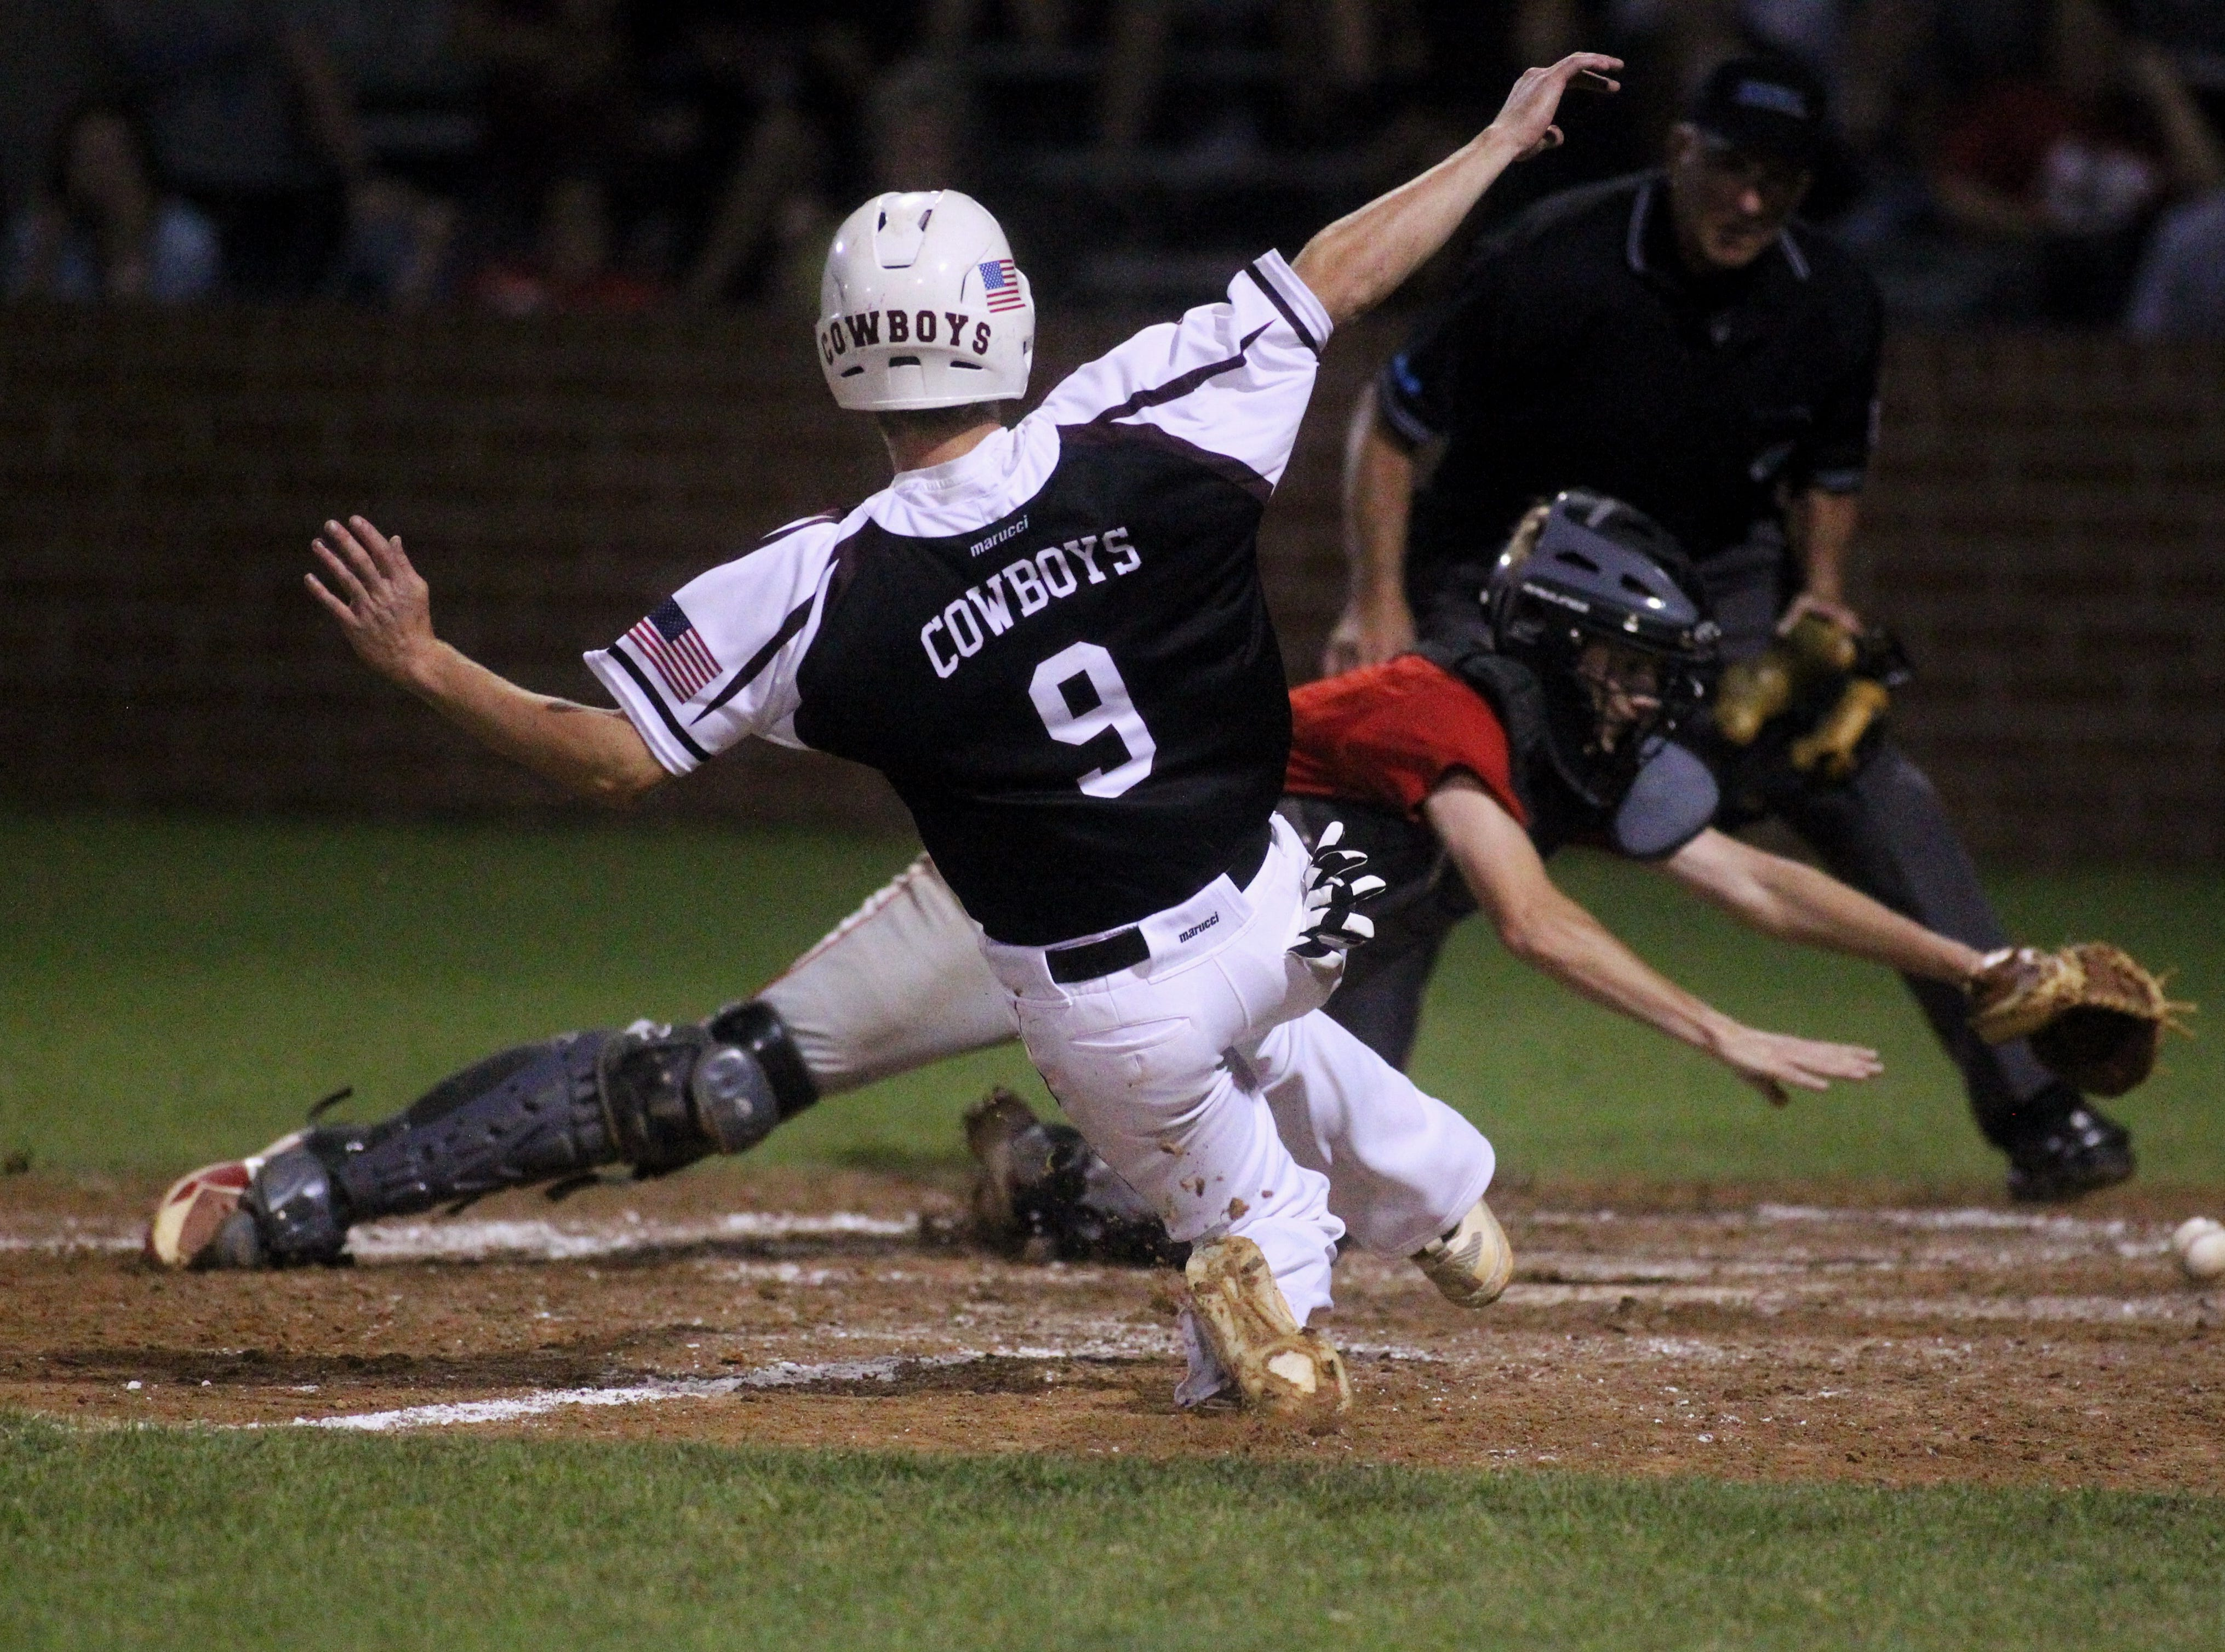 Madison County senior Dylan Bass slides into home plate as a relay throw gets away from Lafayette's catcher, leading to a walk-off victory in extra innings in a regional final.